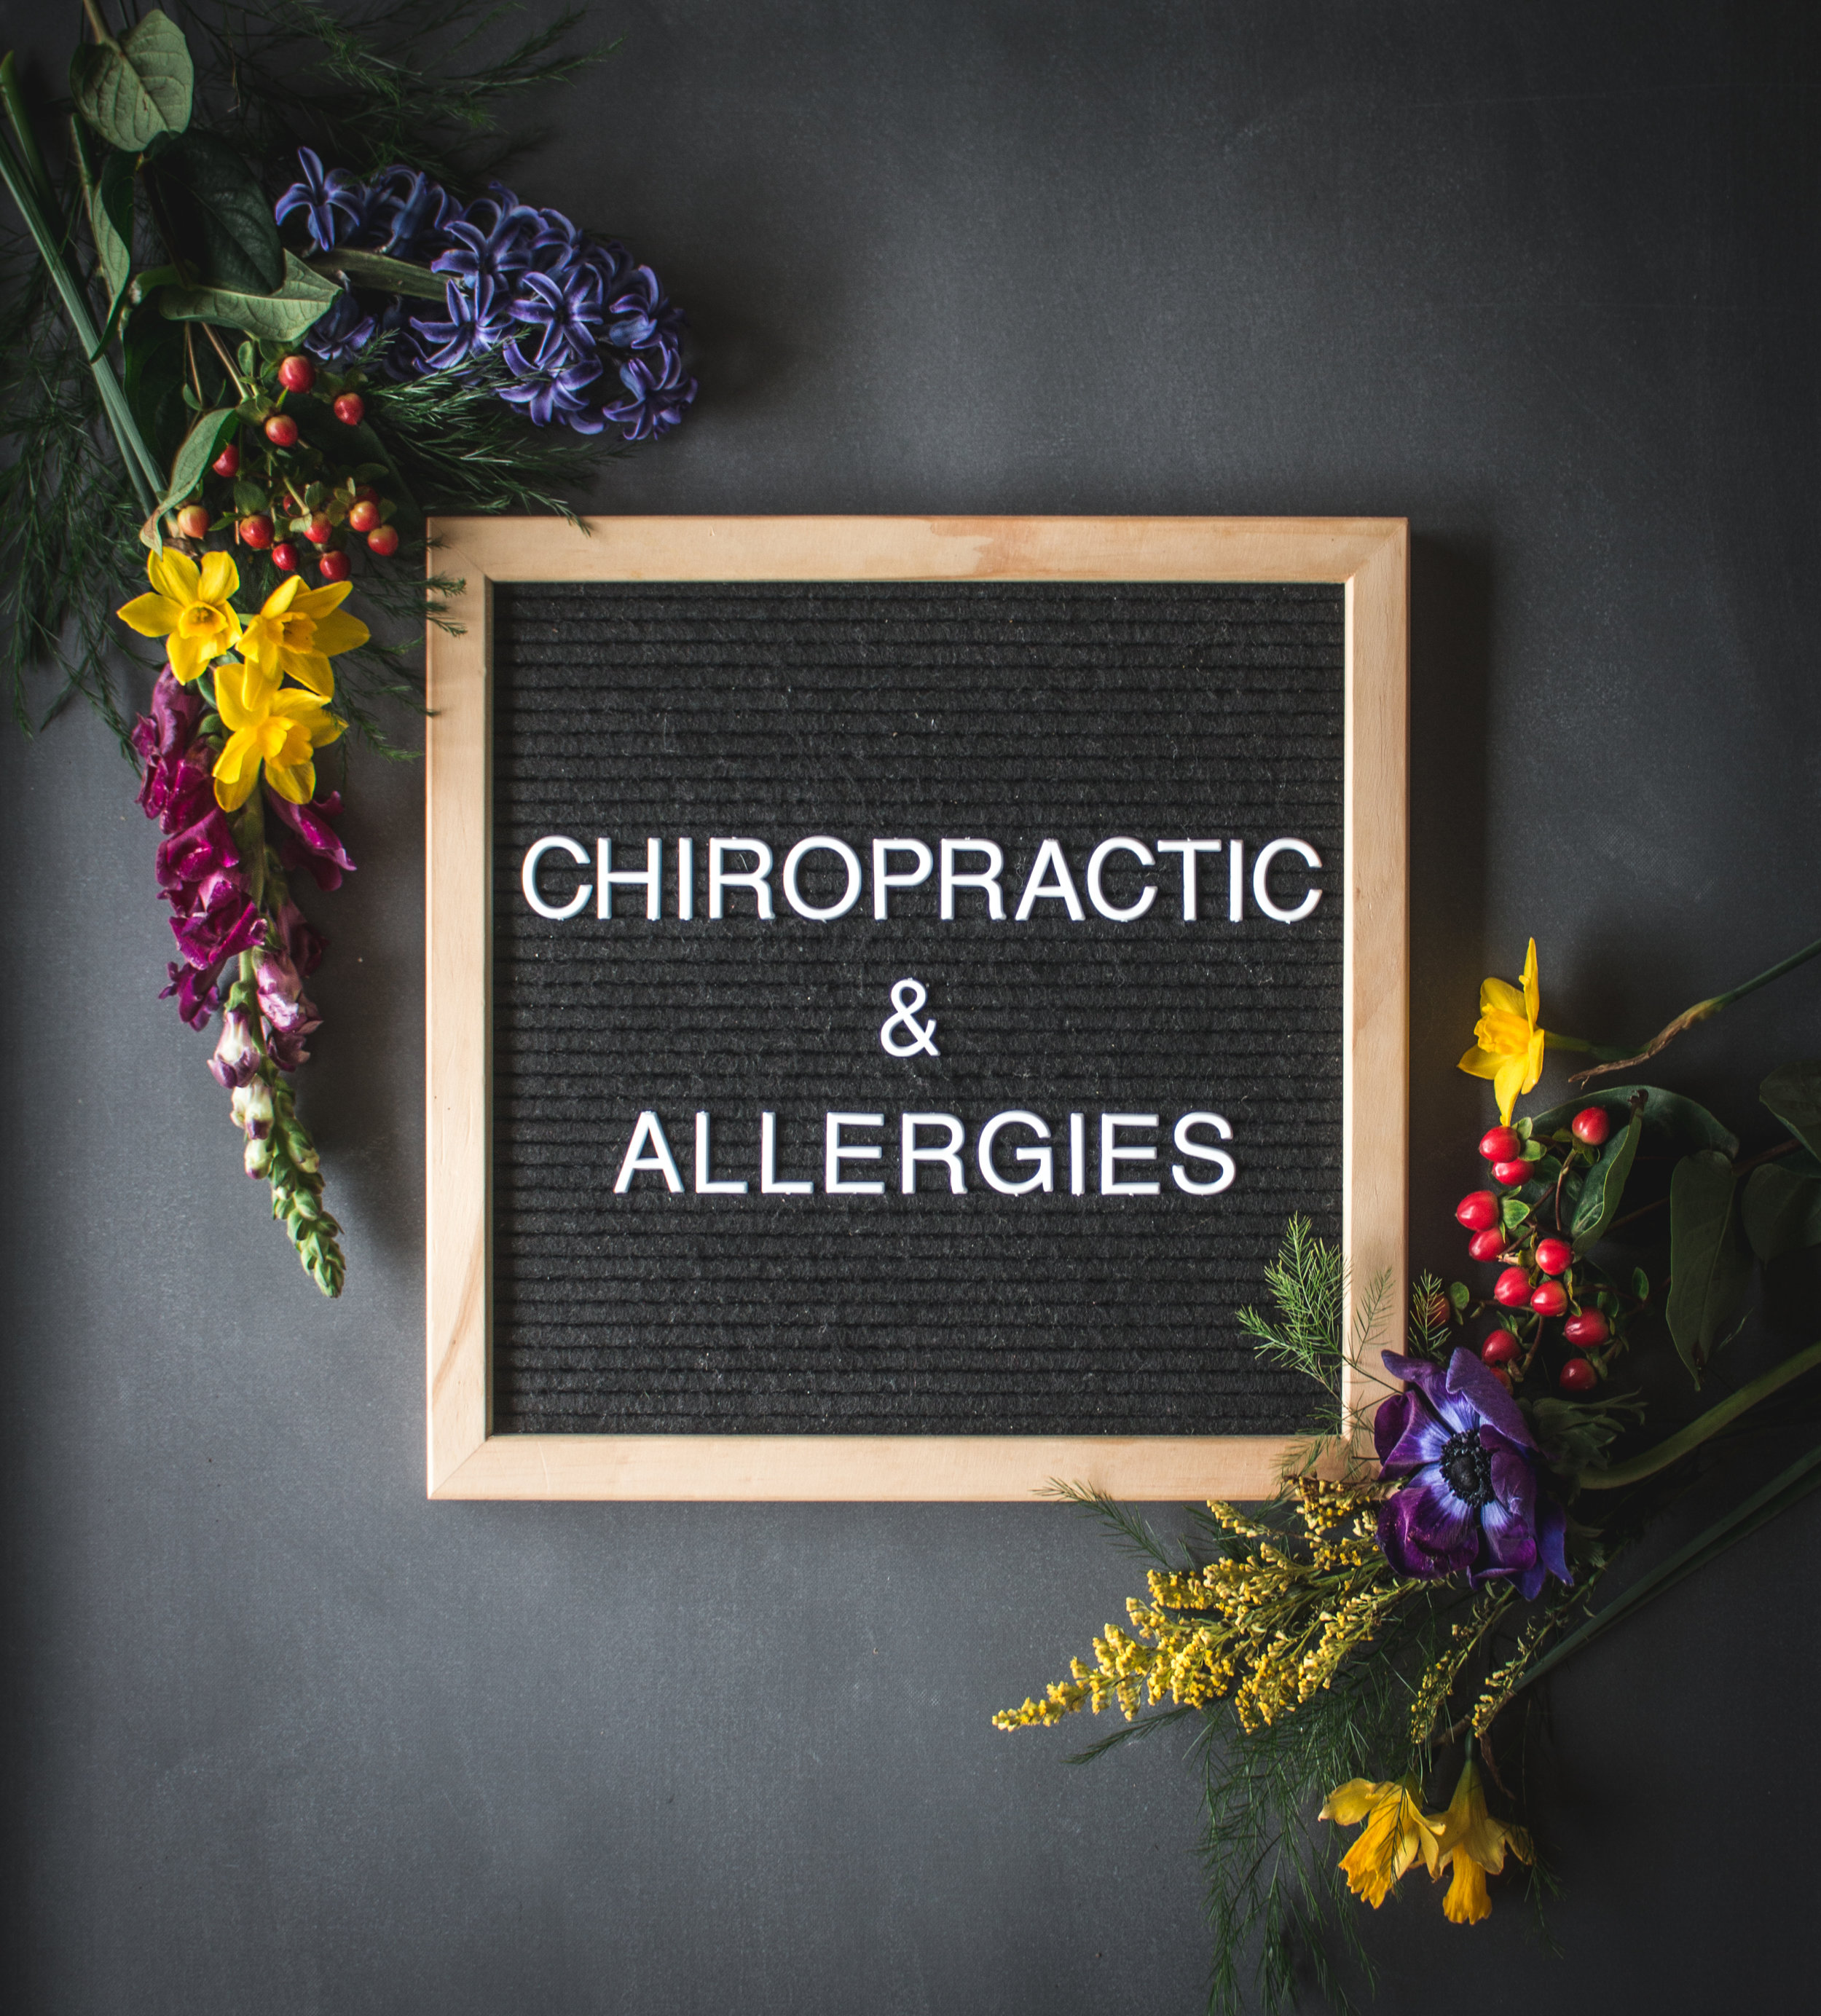 chiropractic and allergies (1 of 1).jpg